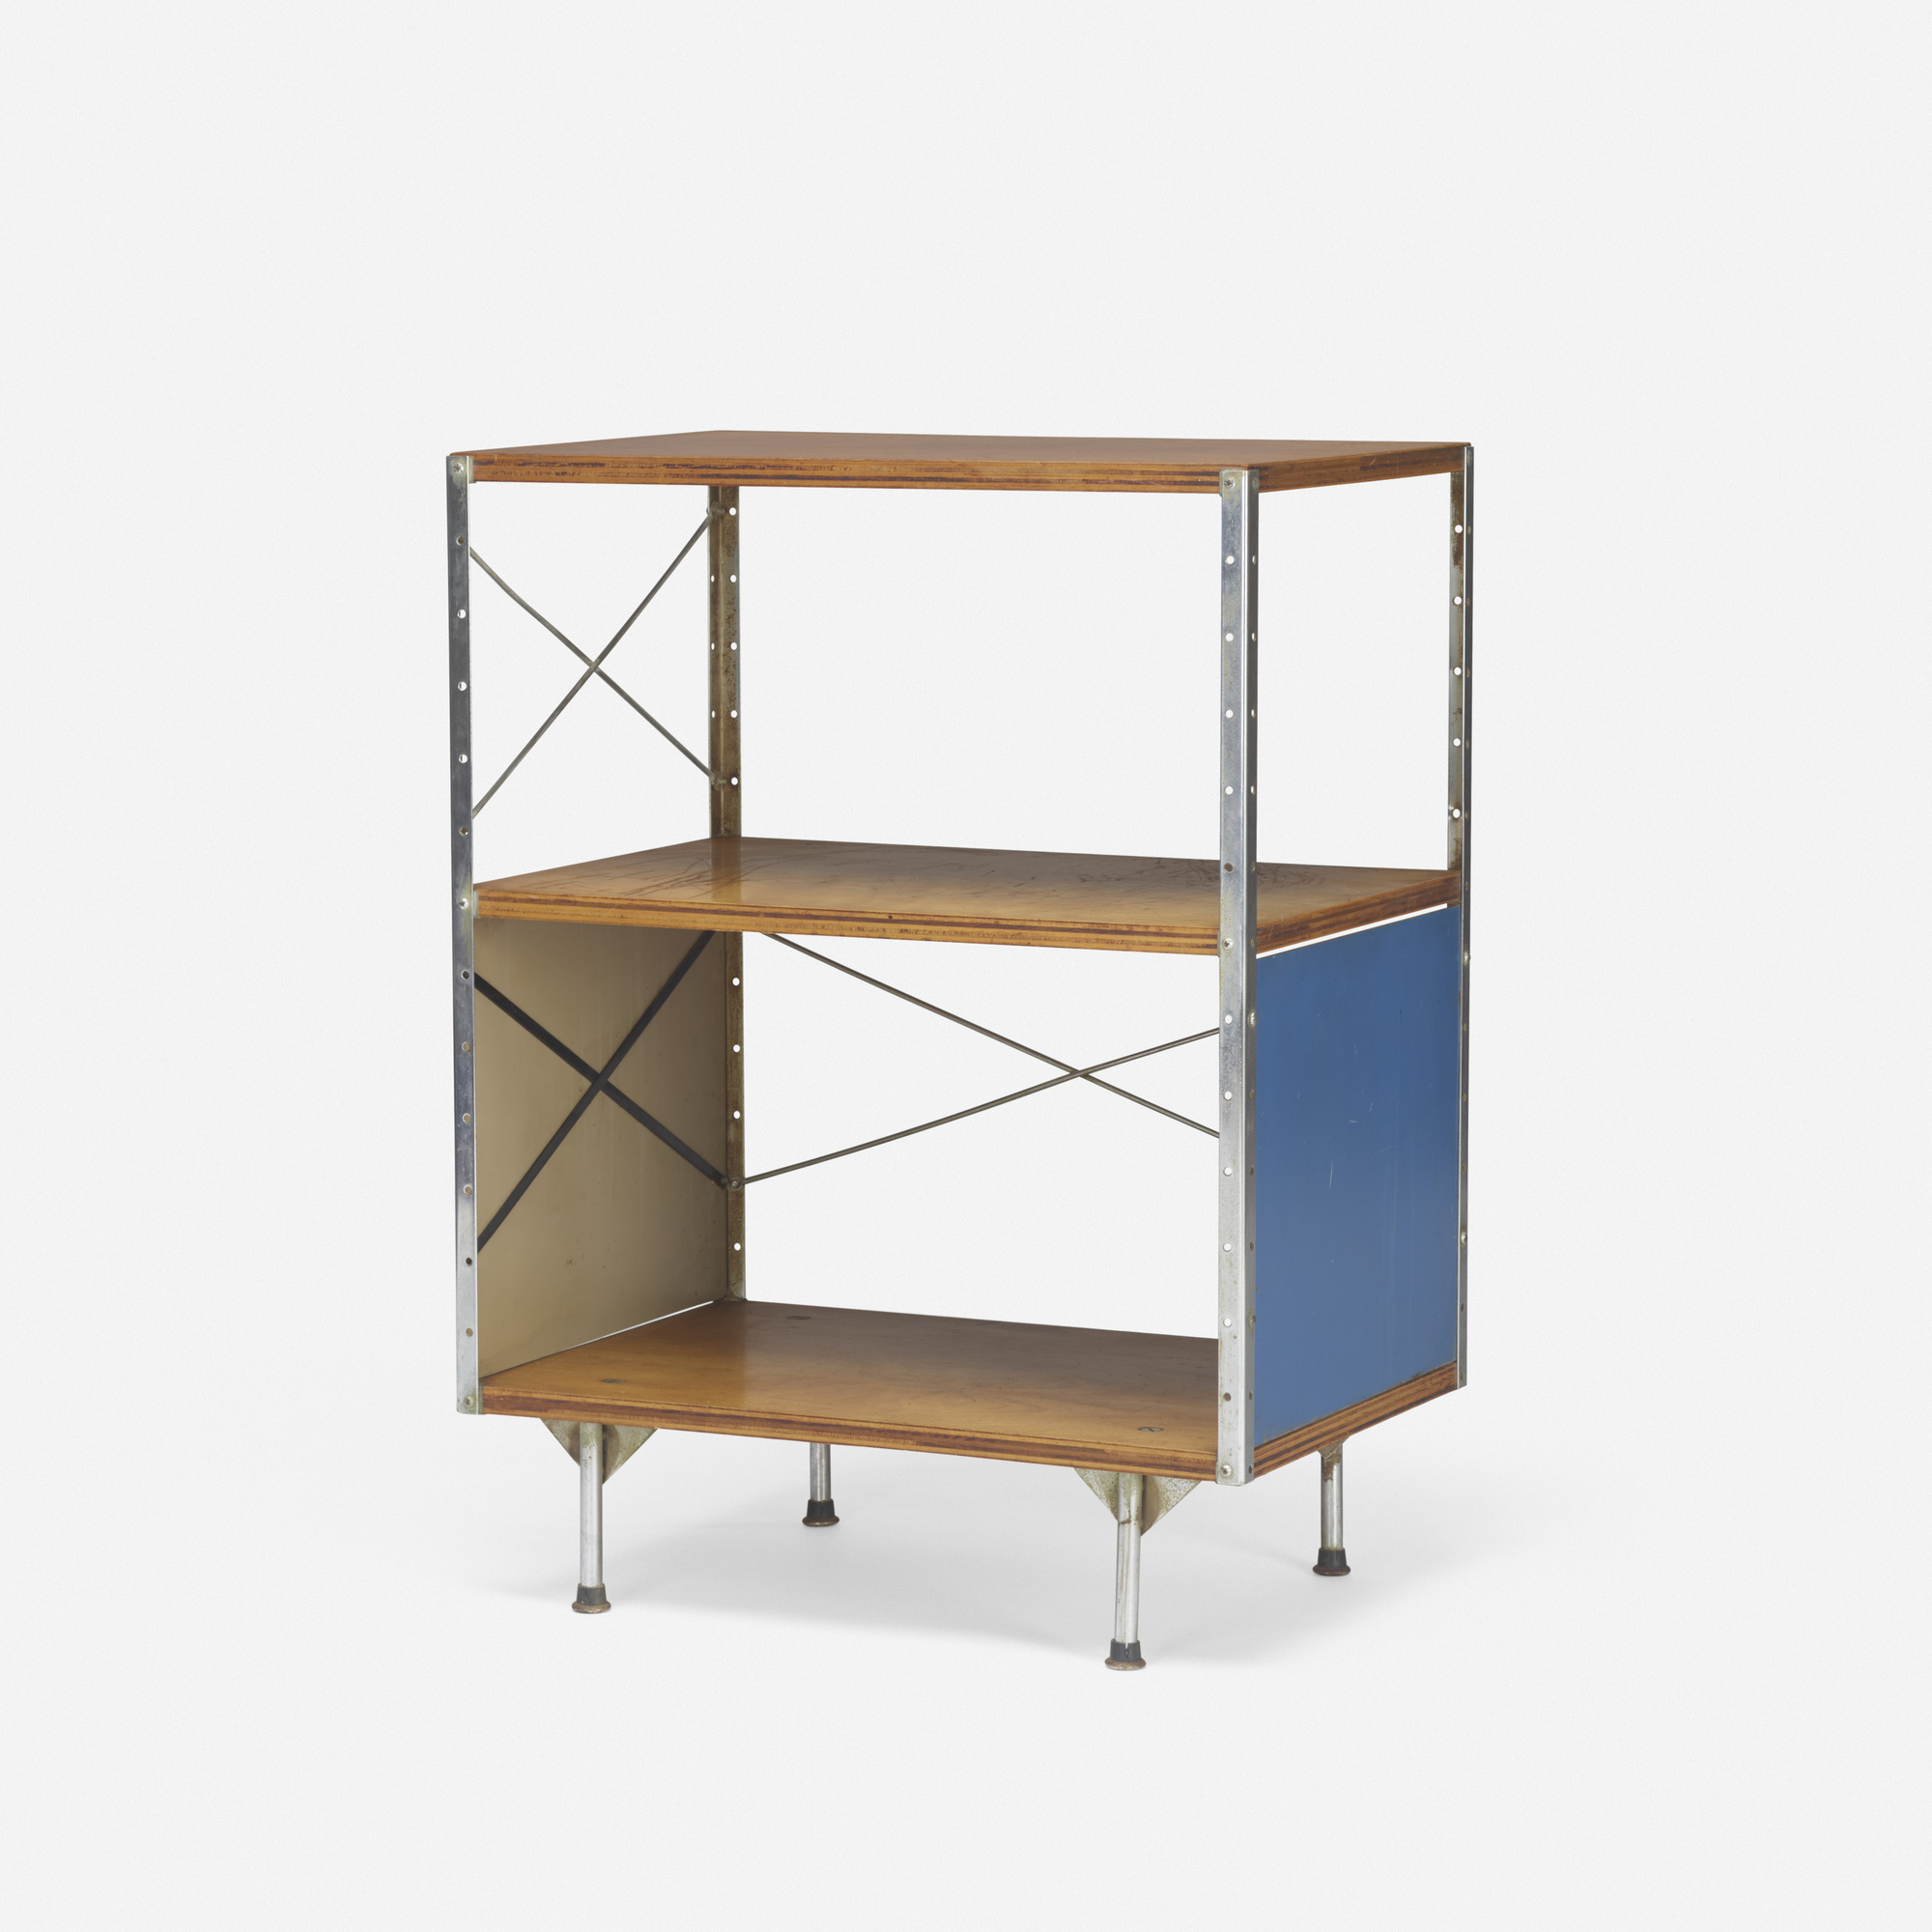 189: Charles and Ray Eames / ESU 250-C (1 of 2)